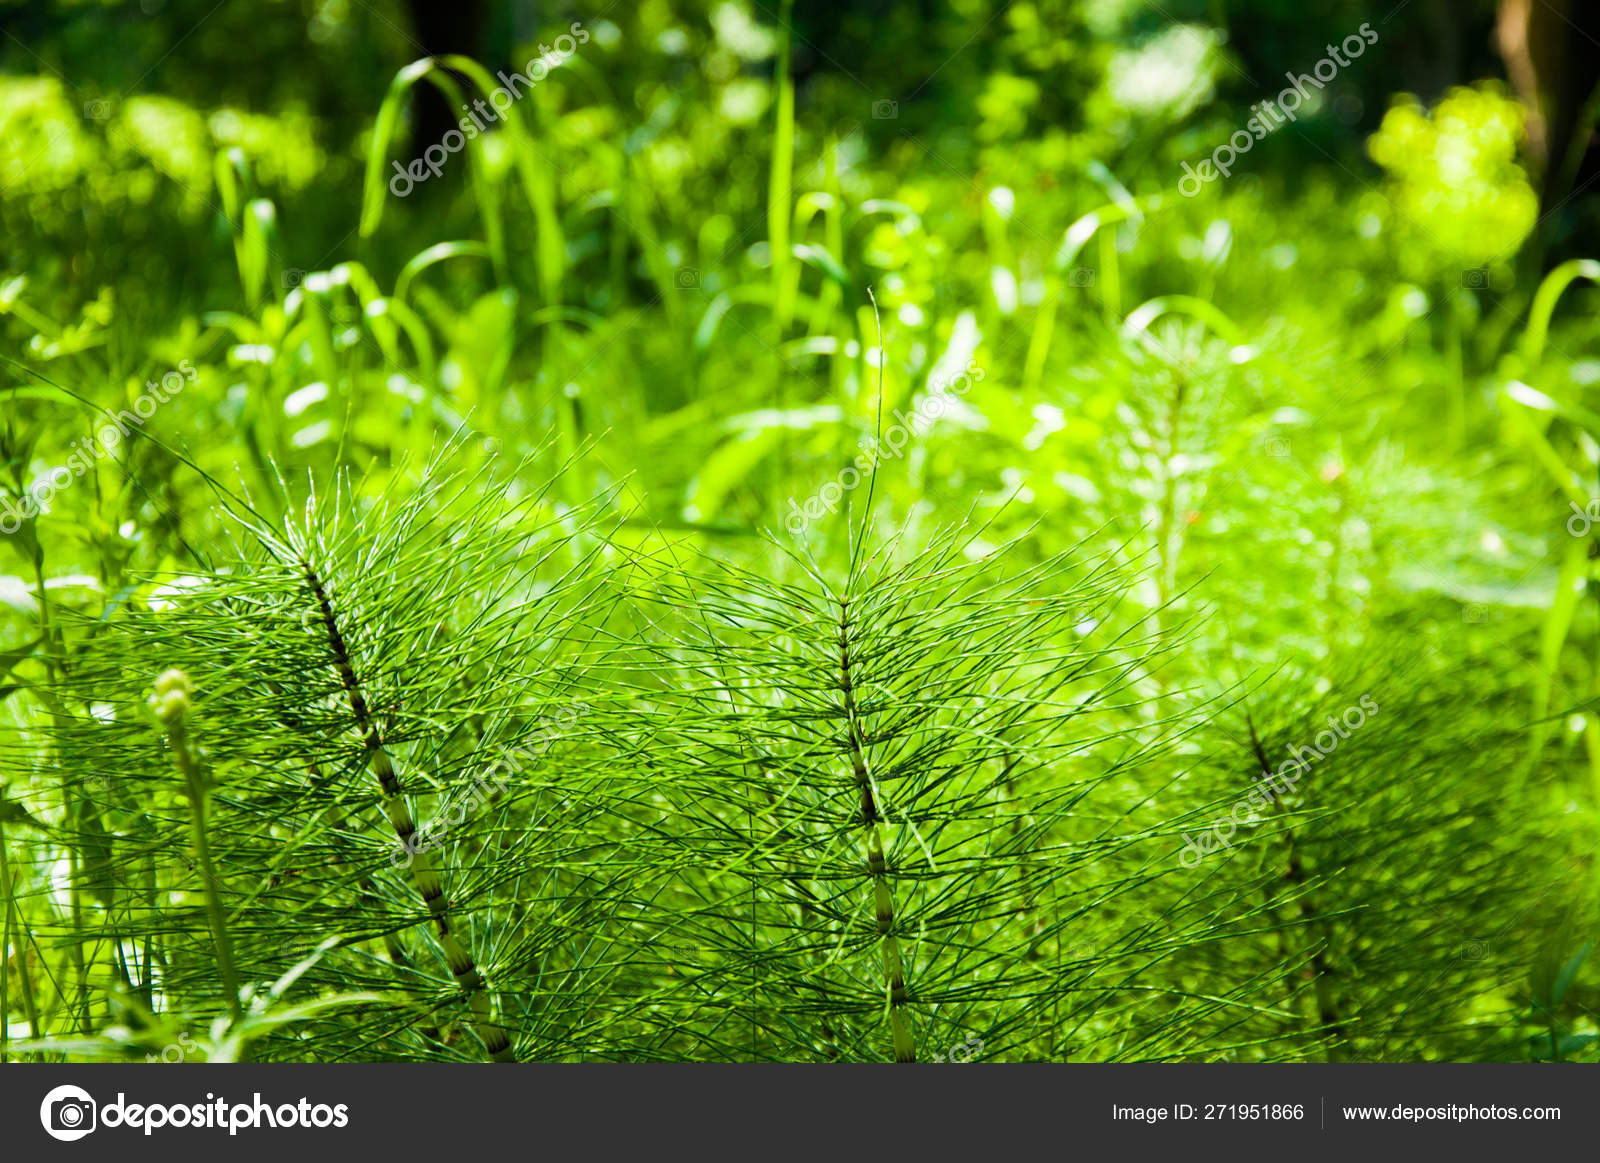 Bright Green Grass Other Plants Forest Summer Stock Photo Image By C Amdre100 271951866